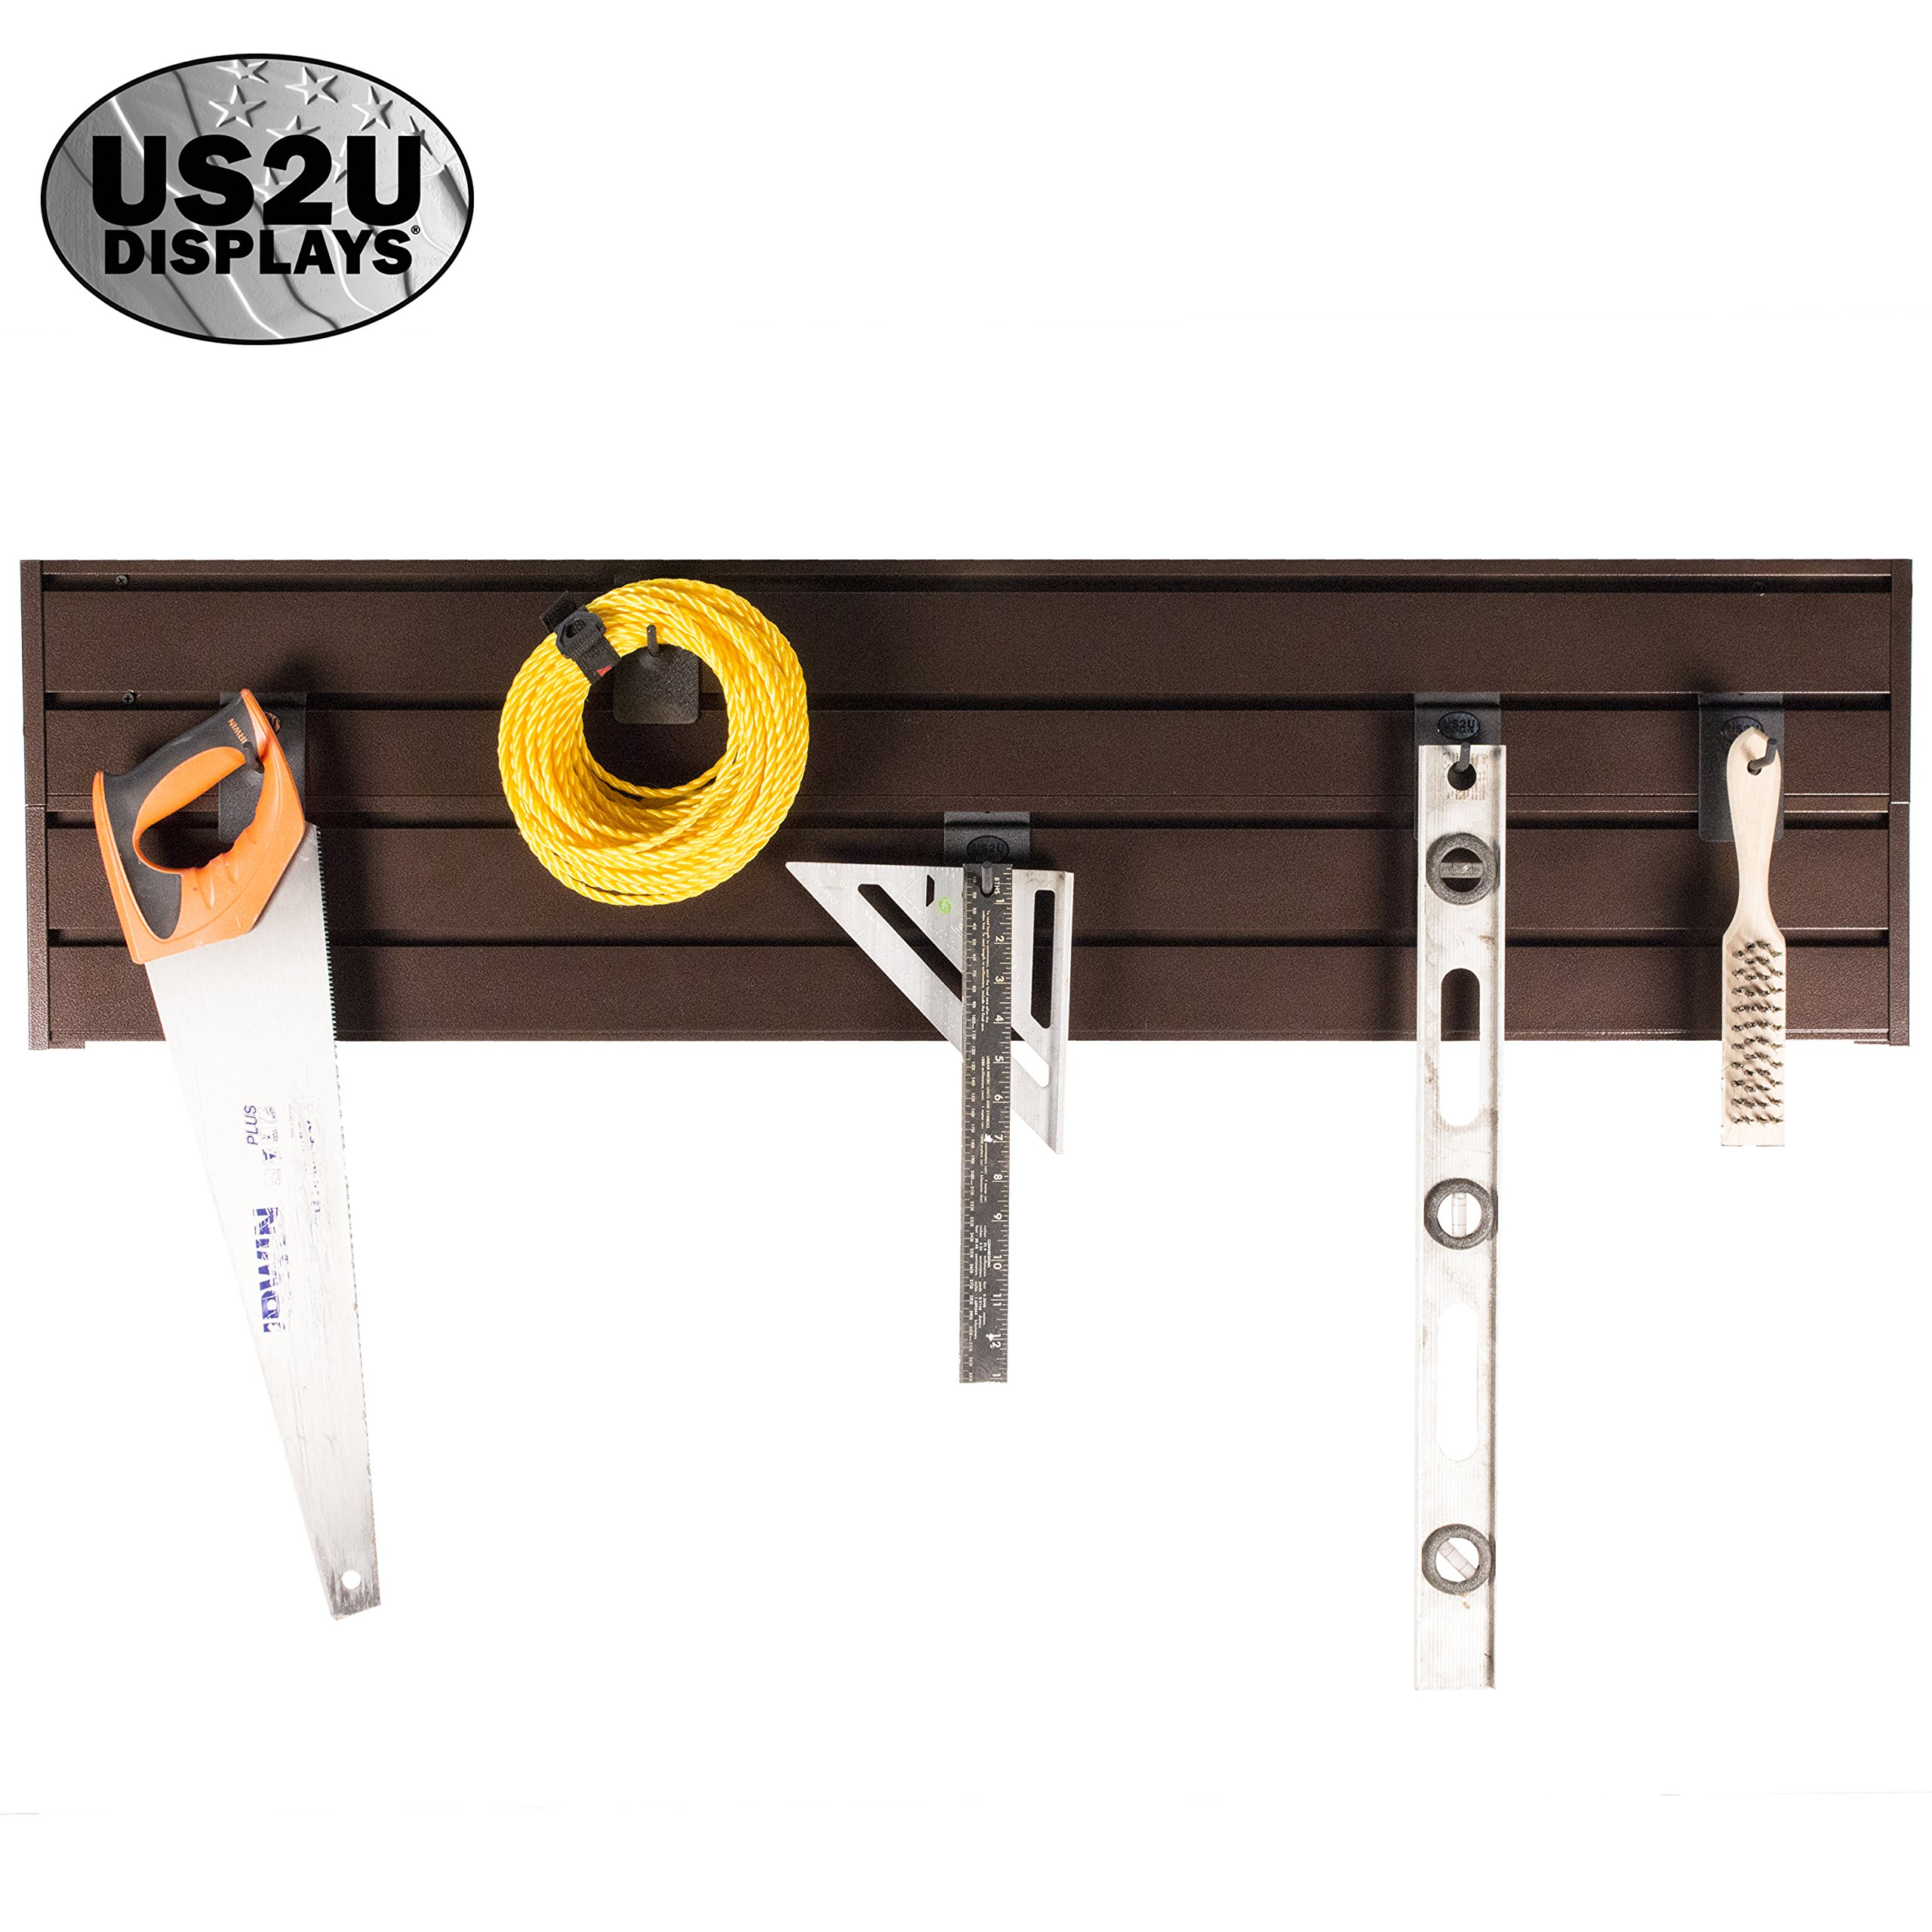 US2U Displays Garage Storage System - 4x Slat Wall Tool Organizer 4' Extruded Aluminum Stackable Rails for Shelving, Hooks and Organization USSW2-C Copper